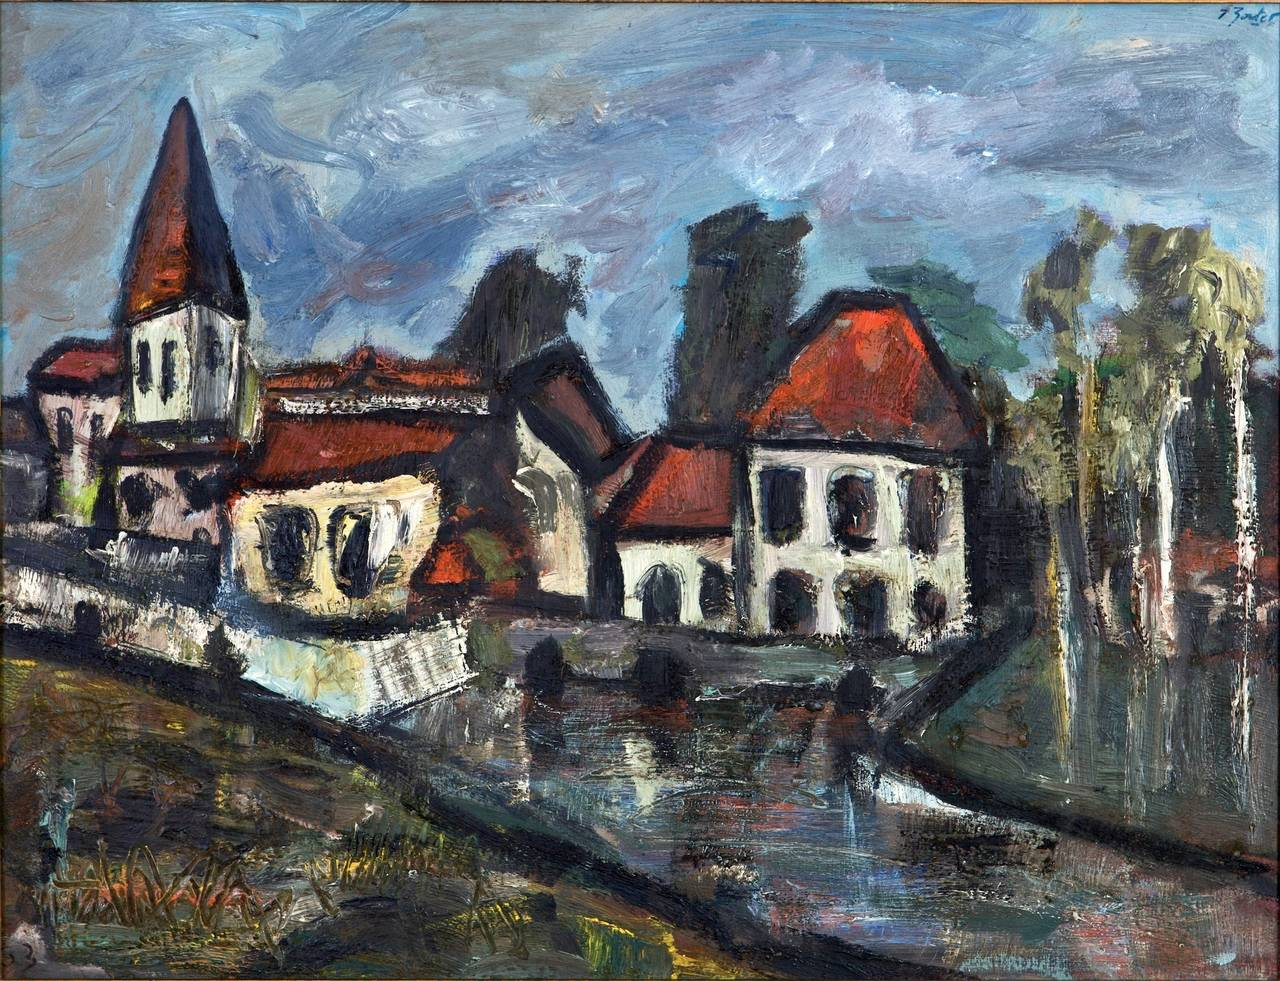 Striking abstract of a Country Village by listed French artist Daniel Bertet. He exhibited in Paris during the 1960s and can be found in private collections worldwide. Oil on canvas, signed 63 lower left and Bertet upper right and on verso.   Found